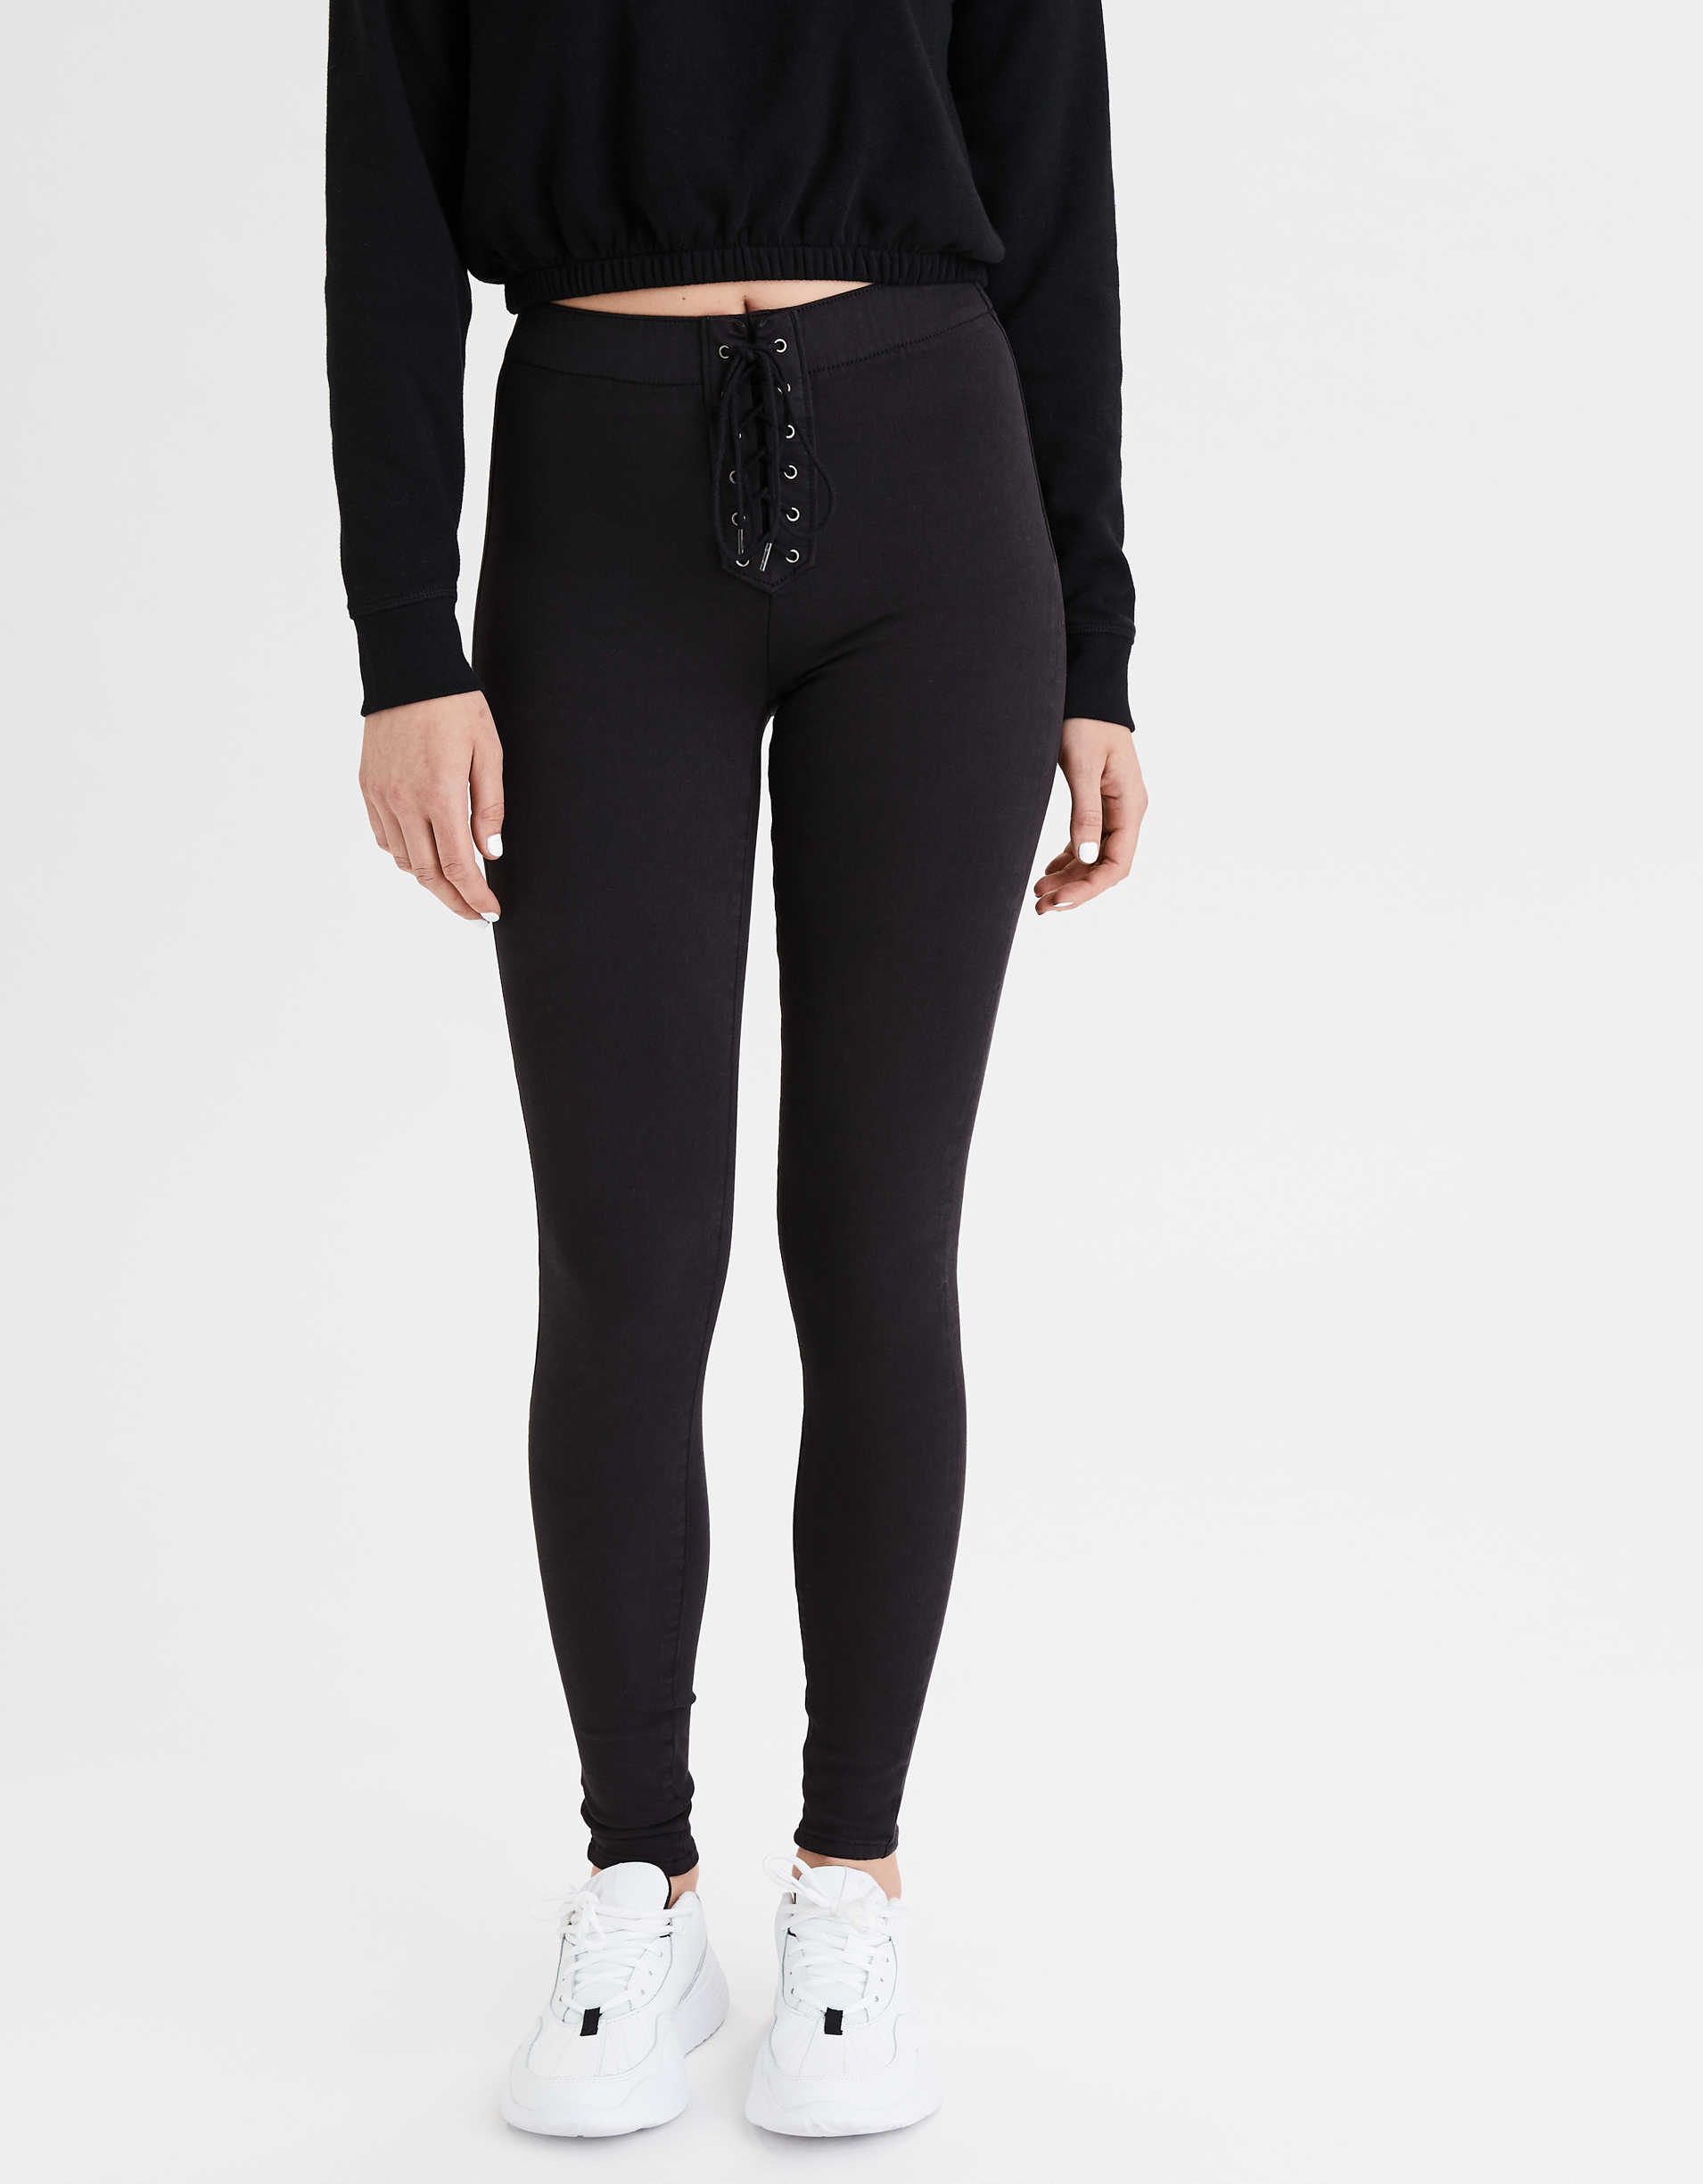 AE Ne(x)t Level High-Waisted Pull-On Jegging